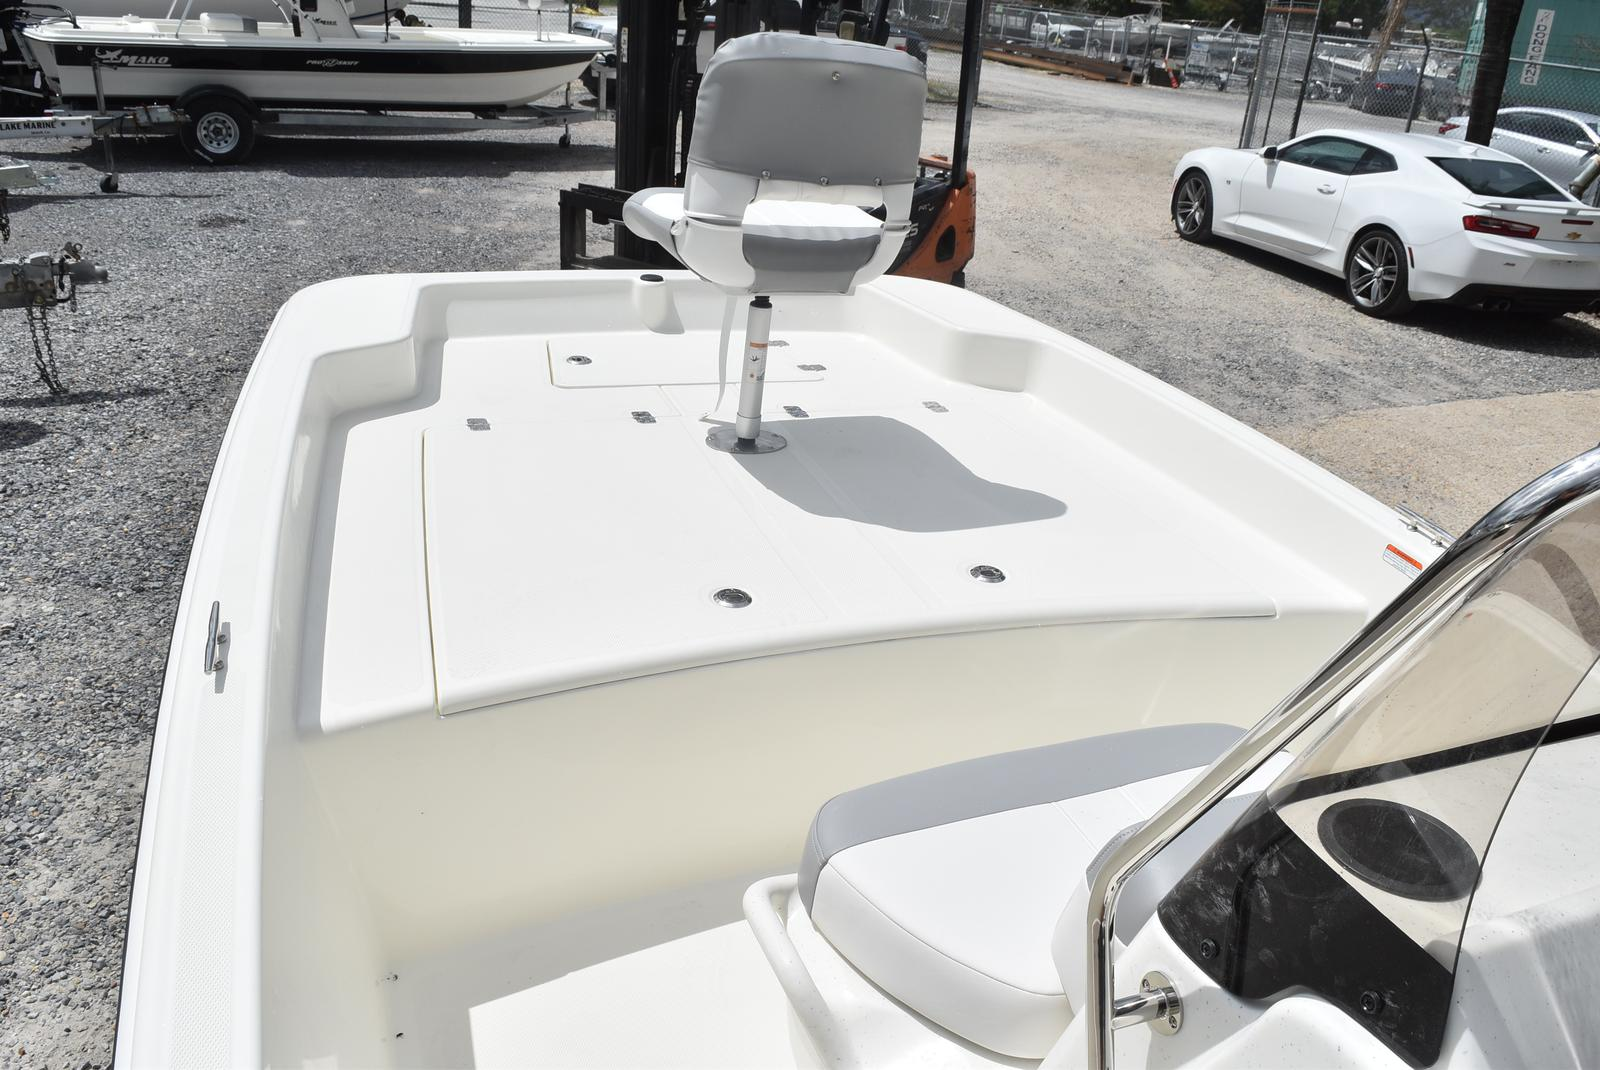 2020 Mako boat for sale, model of the boat is Pro Skiff 17, 75 ELPT & Image # 428 of 702